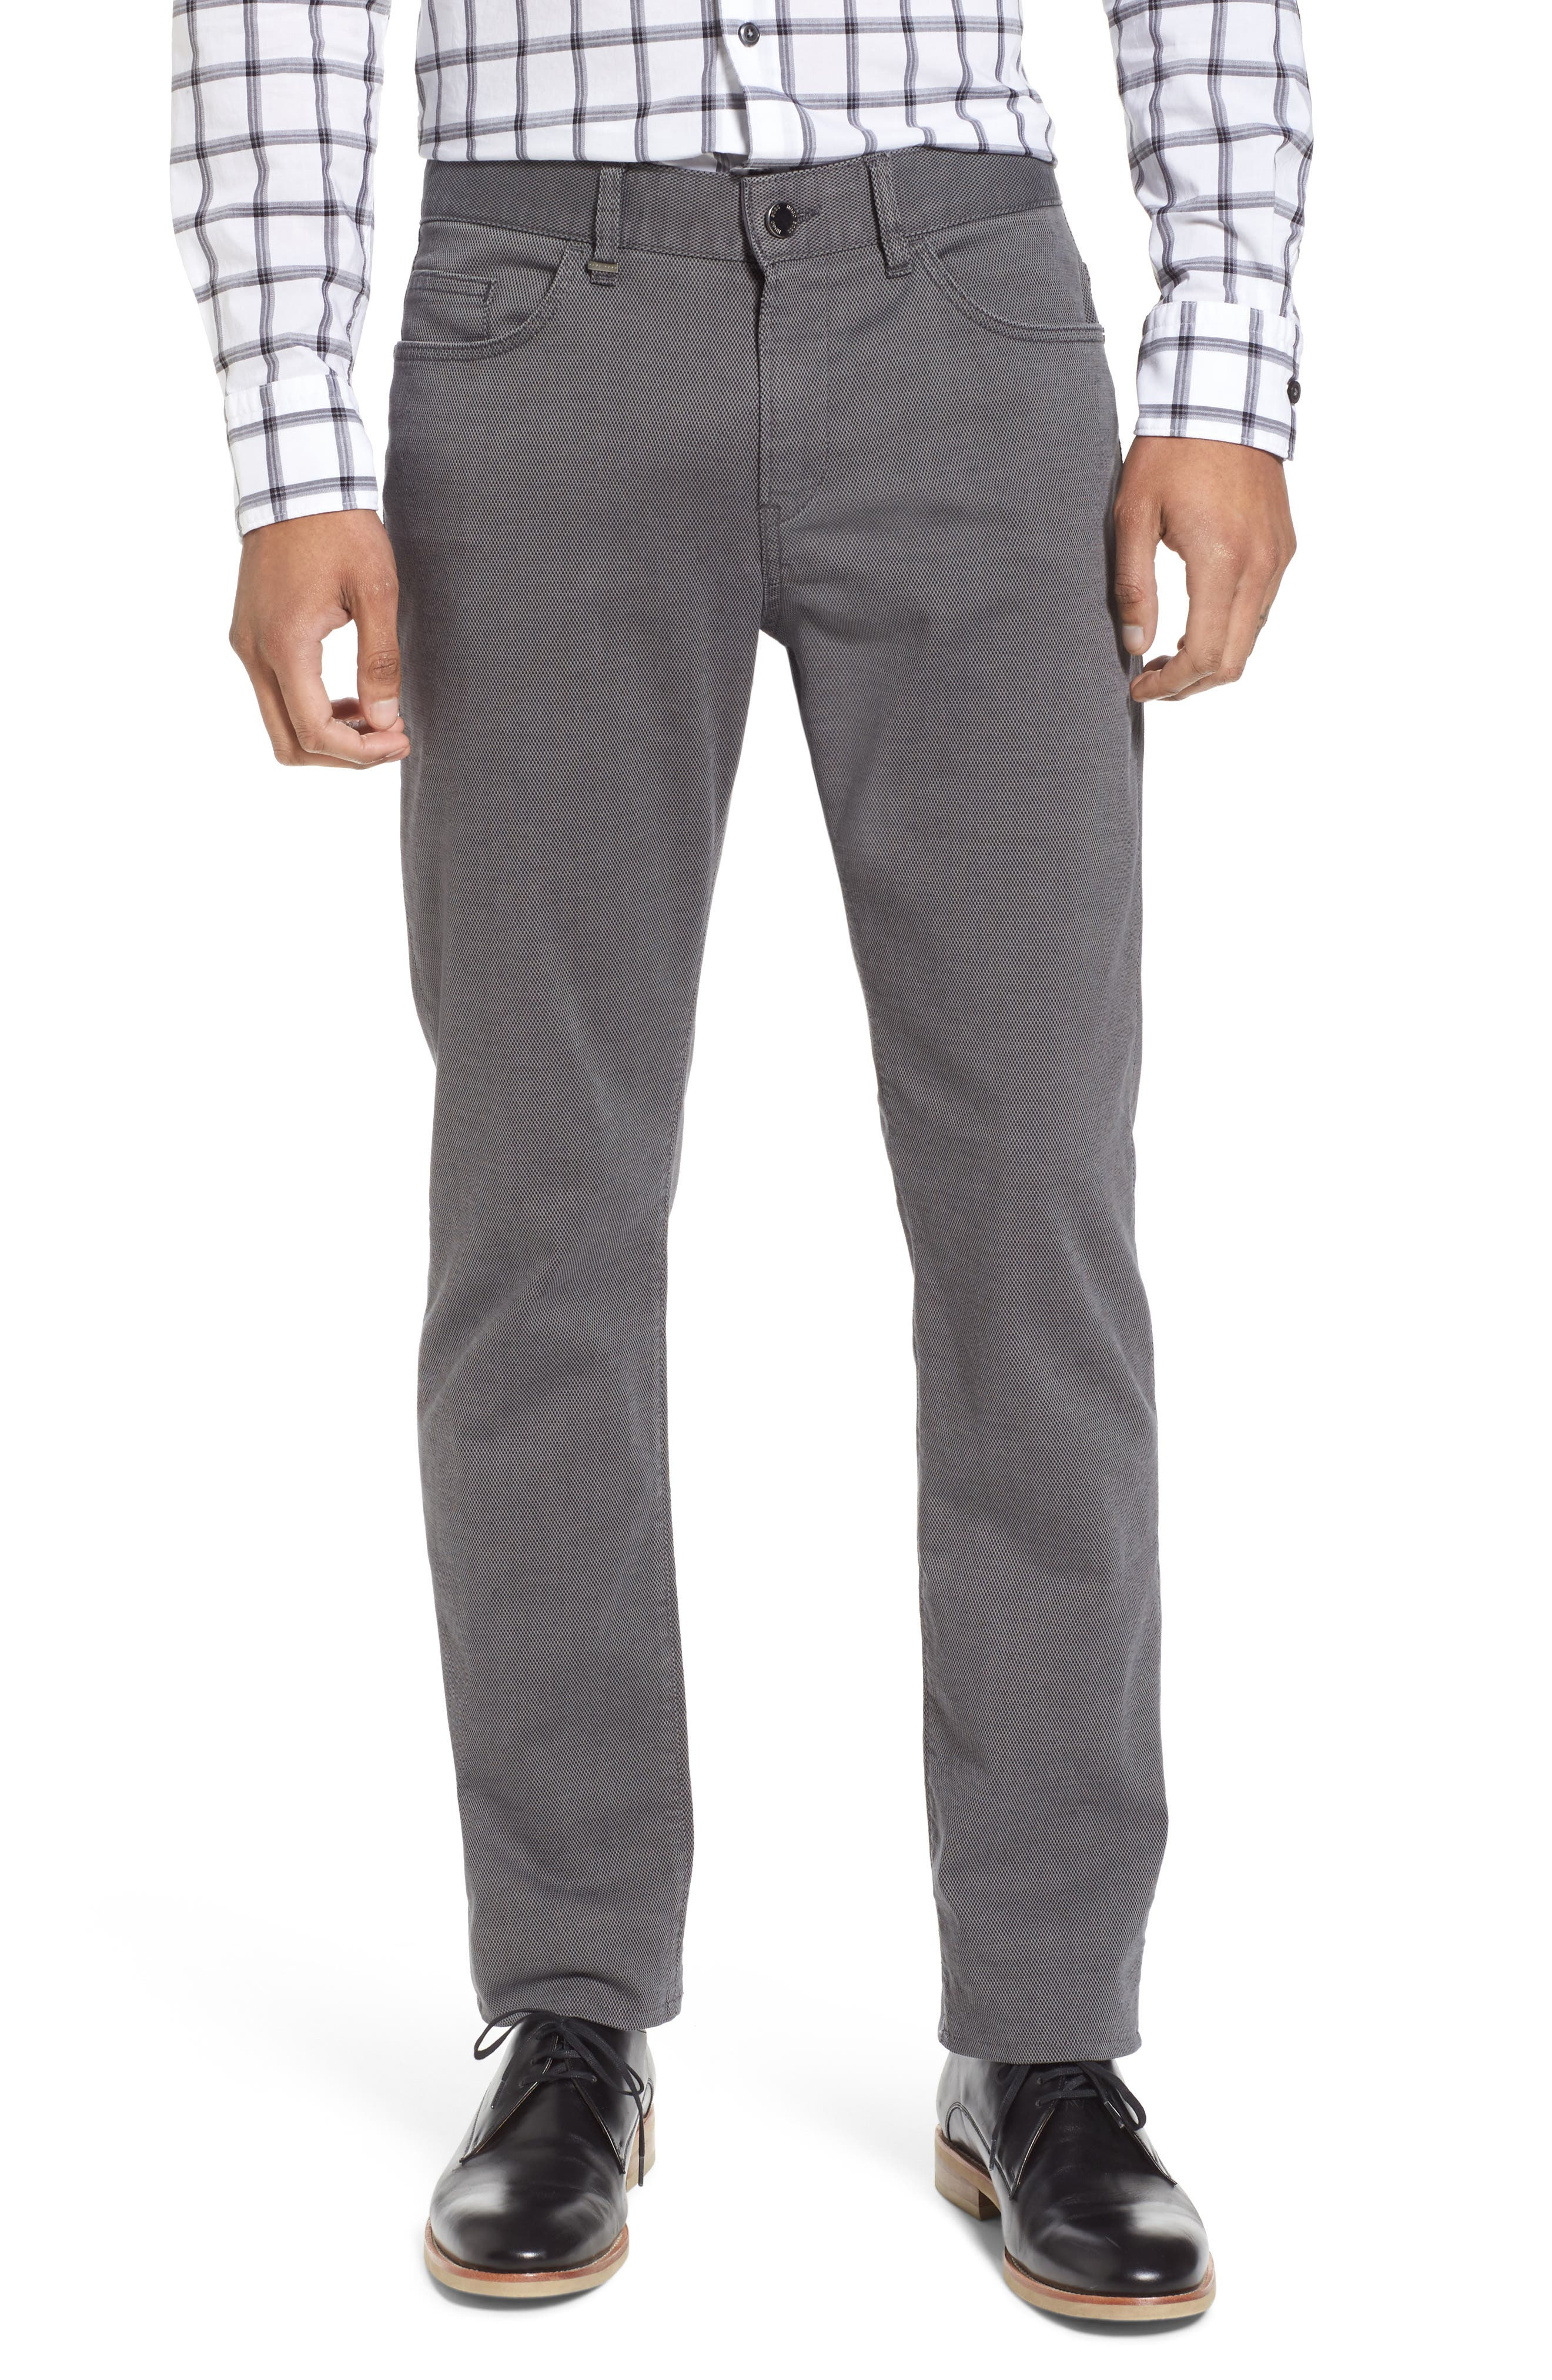 Delaware Slim Fit Structure Jeans,                         Main,                         color, Grey